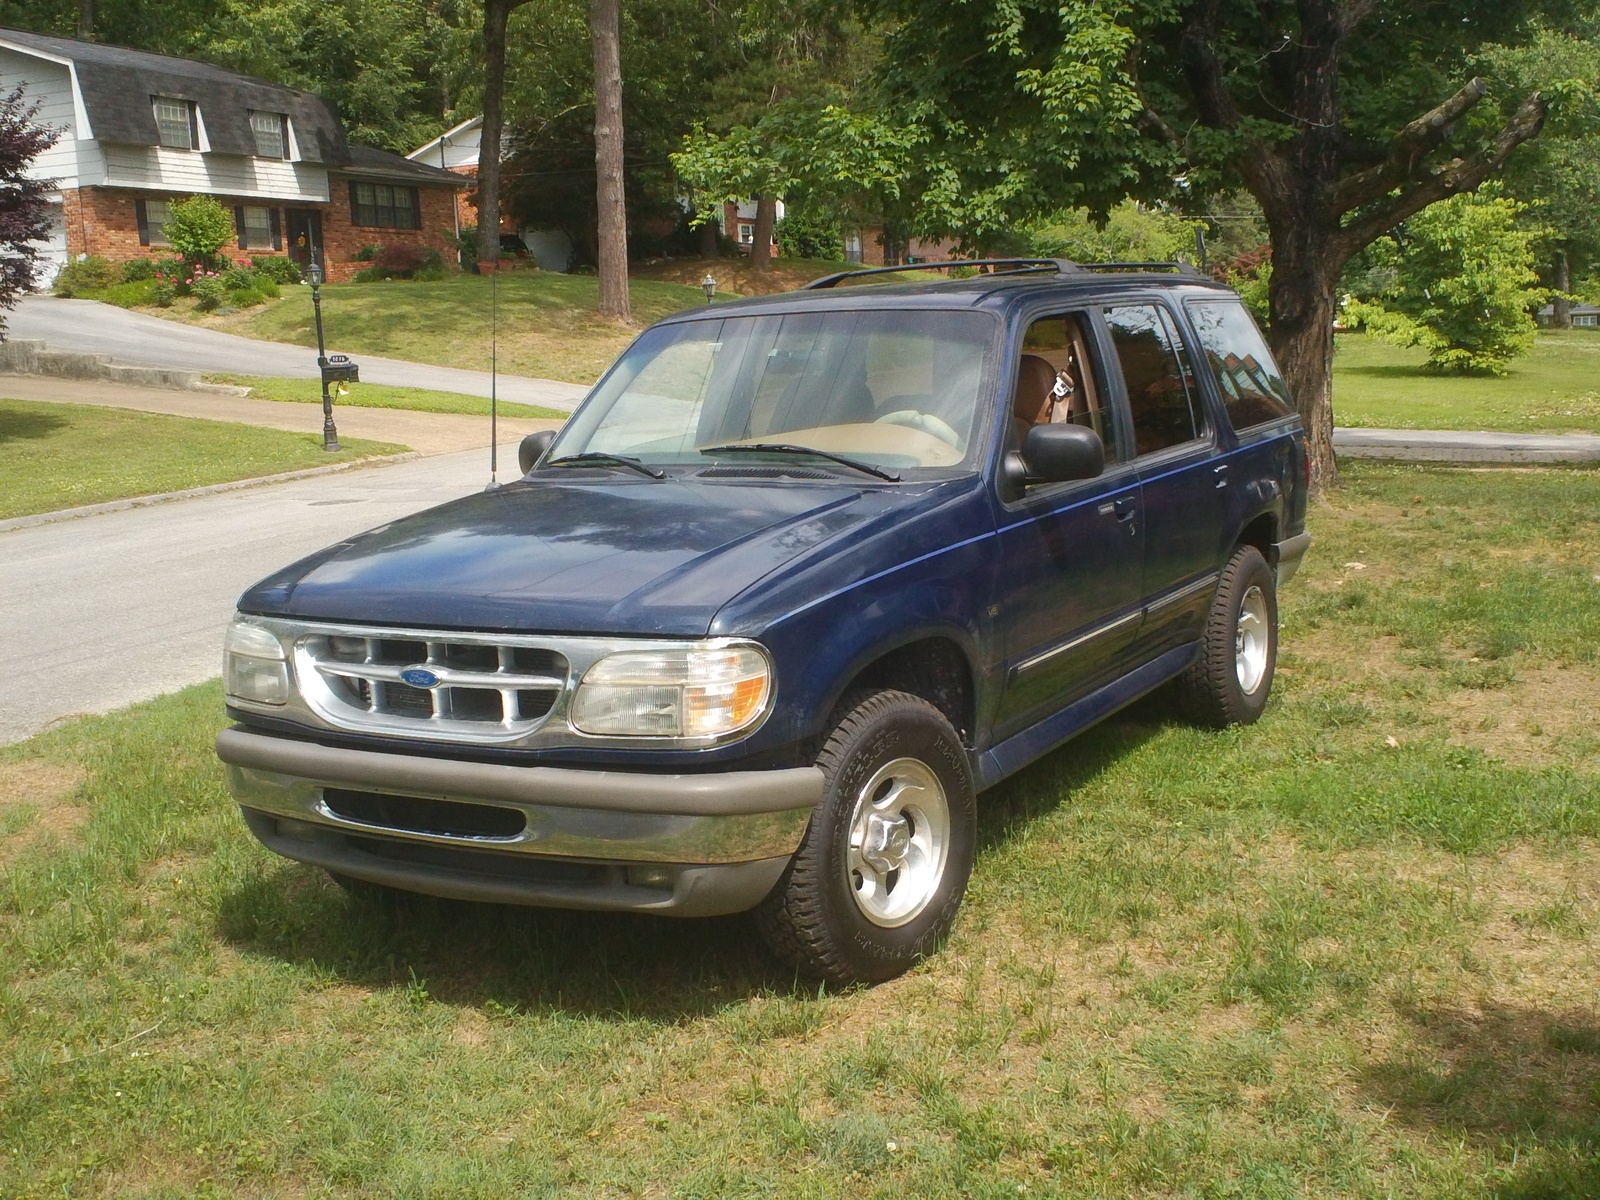 Ford Explorer 4.0 1996 photo - 6